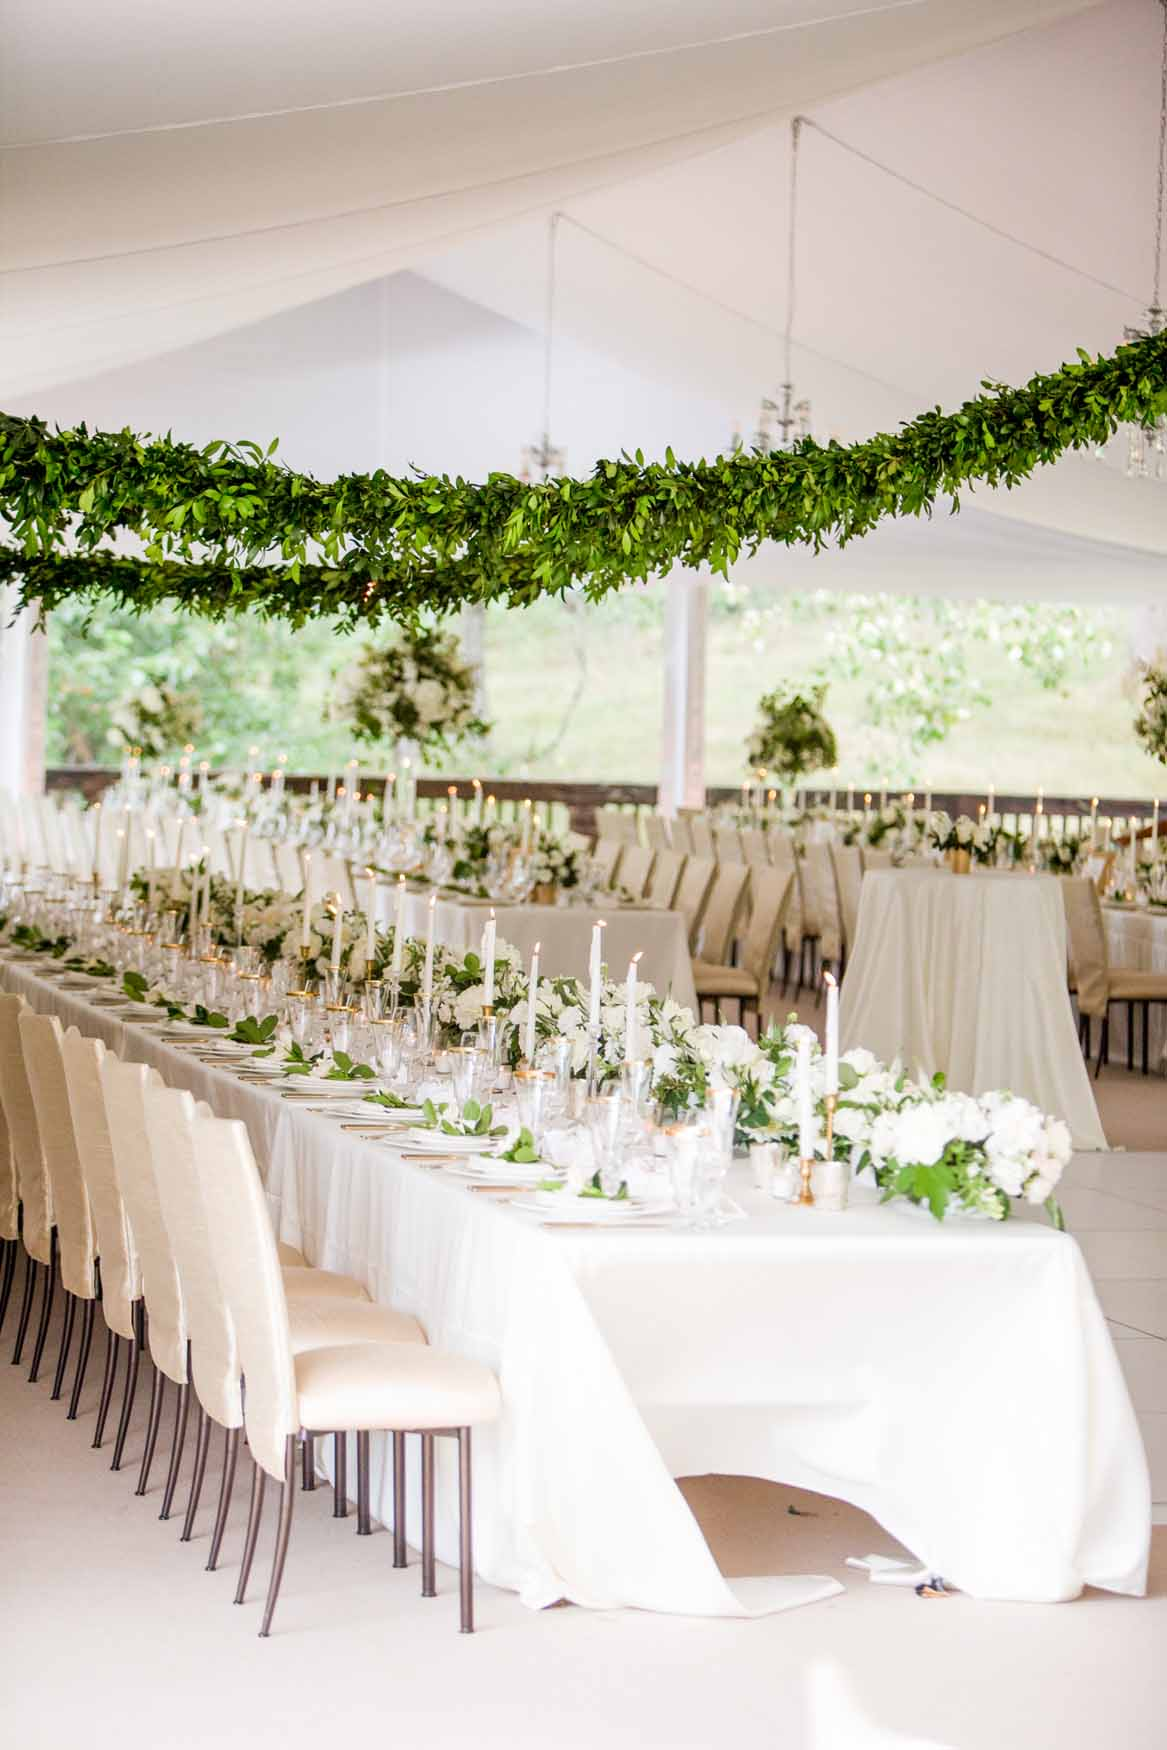 Long greenery garlands in tent ceiling above long tables - Elegant Summer Private Estate Wedding. Flora Nova Design Seattle